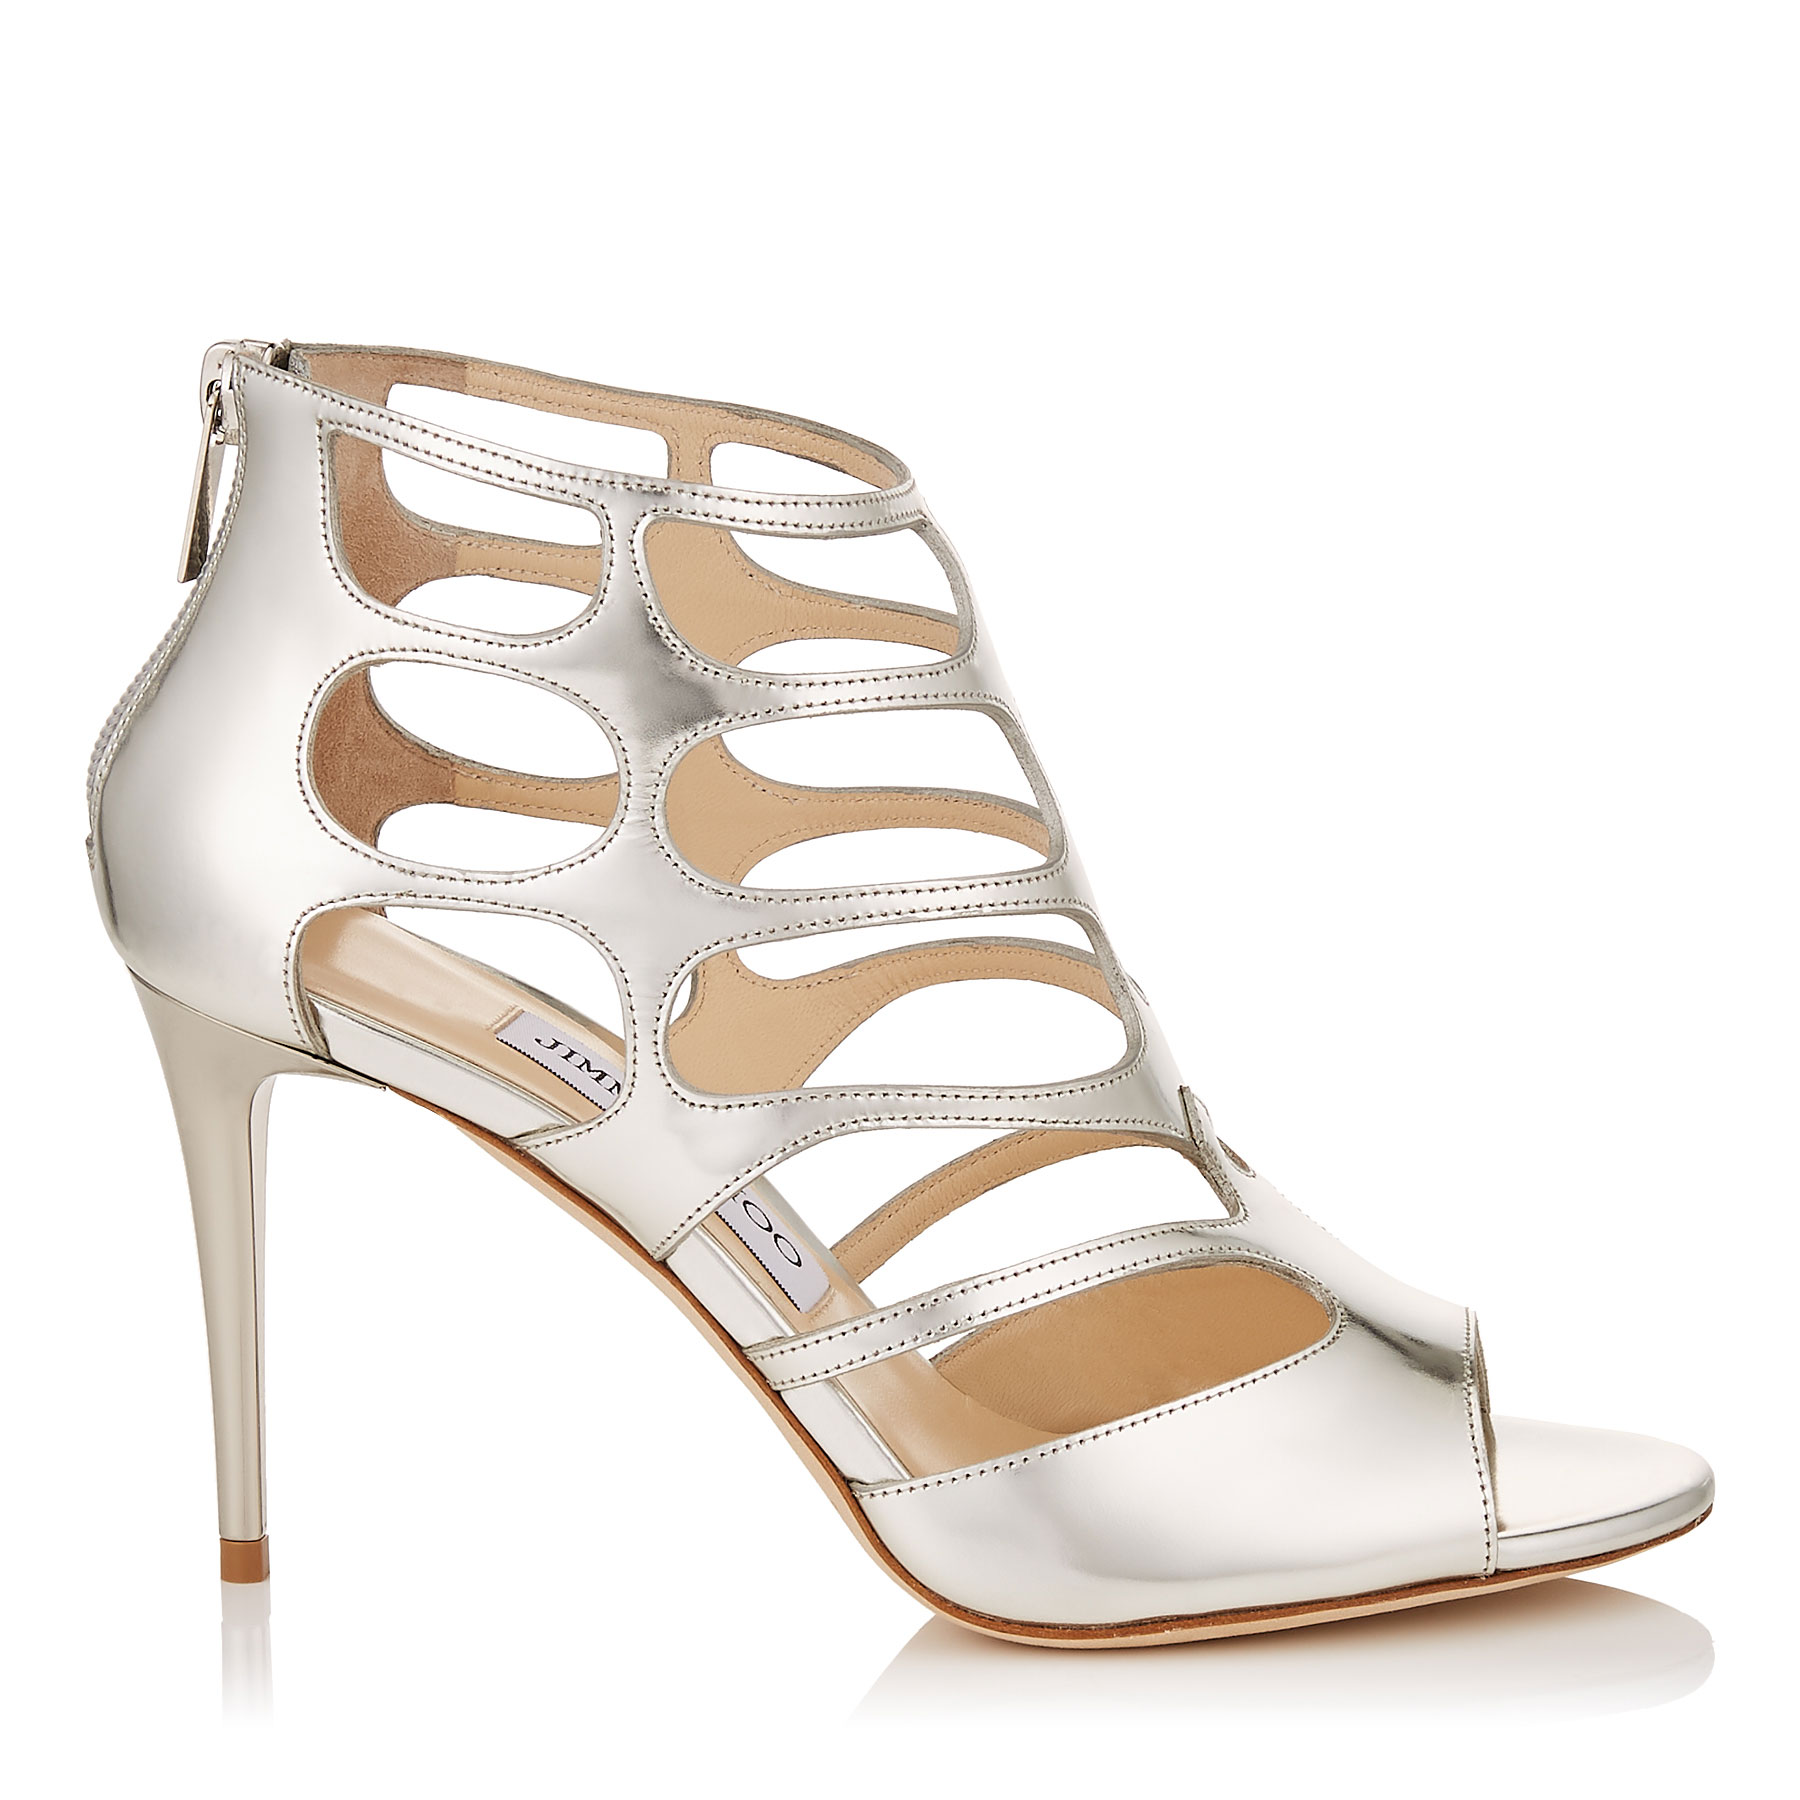 REN 85 Silver Mirror Leather Sandals by Jimmy Choo